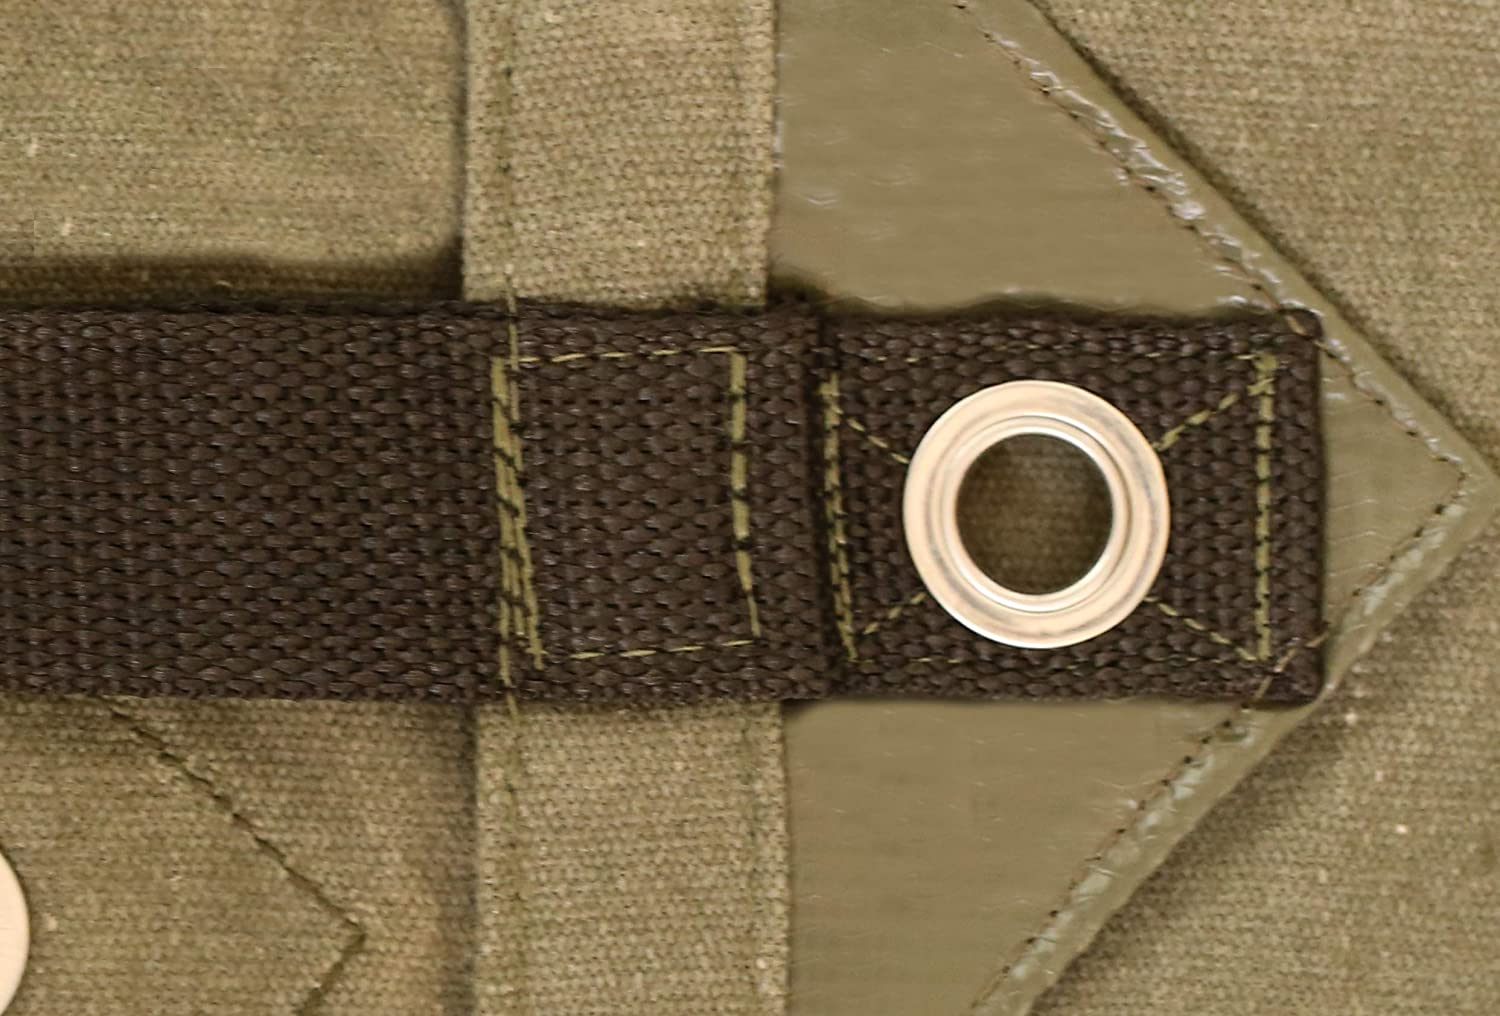 Heavy Duty Canvas Tarp Reinforced Edges Mold Reflective Tape -Industrial /& Commercial use Waterproof UV Resistant w//Rustproof Grommets 18oz Cut Size: 8 x 20, Finished Size: 78 x 198